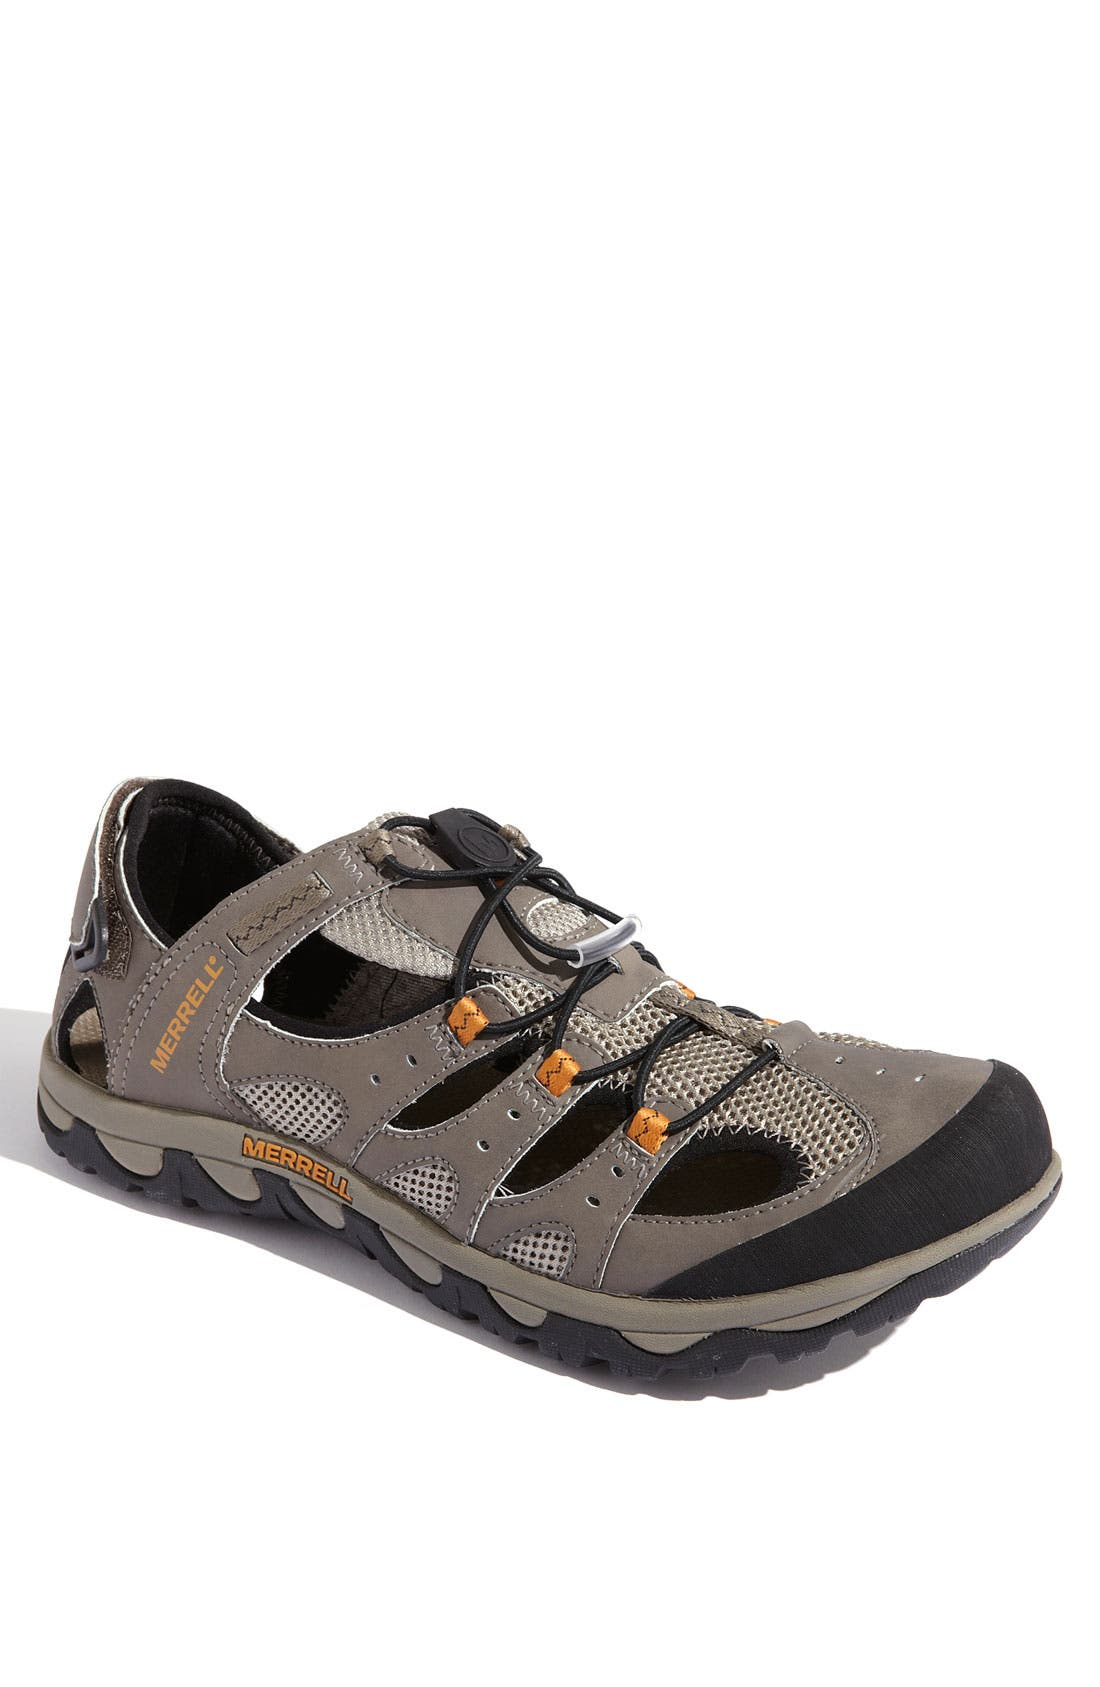 Main Image - Merrell 'Portage Web' Water Shoe (Men)